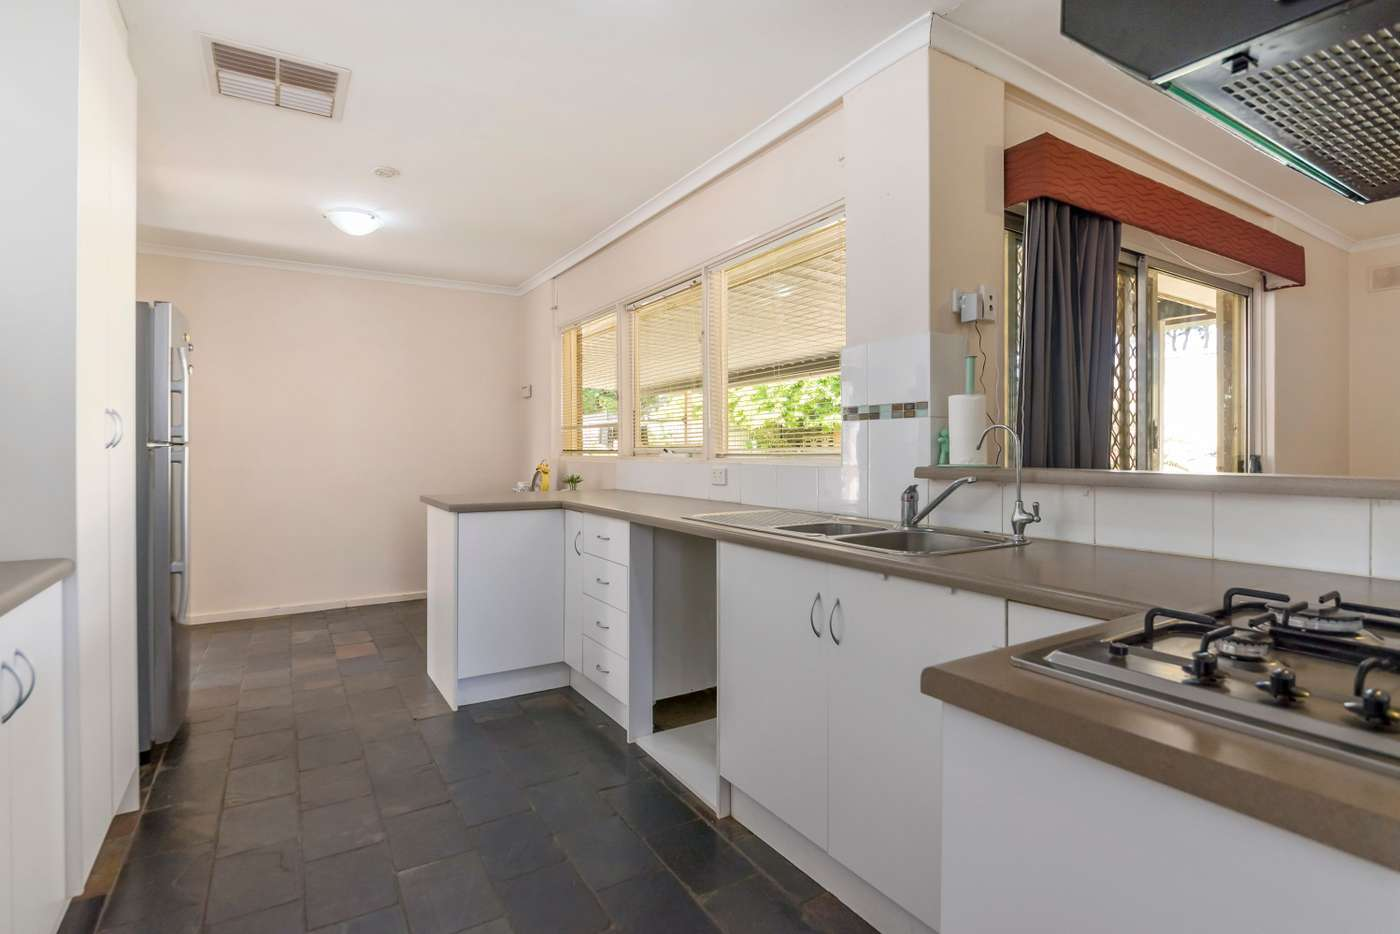 Sixth view of Homely house listing, 7 Rosewall Avenue, Gulfview Heights SA 5096